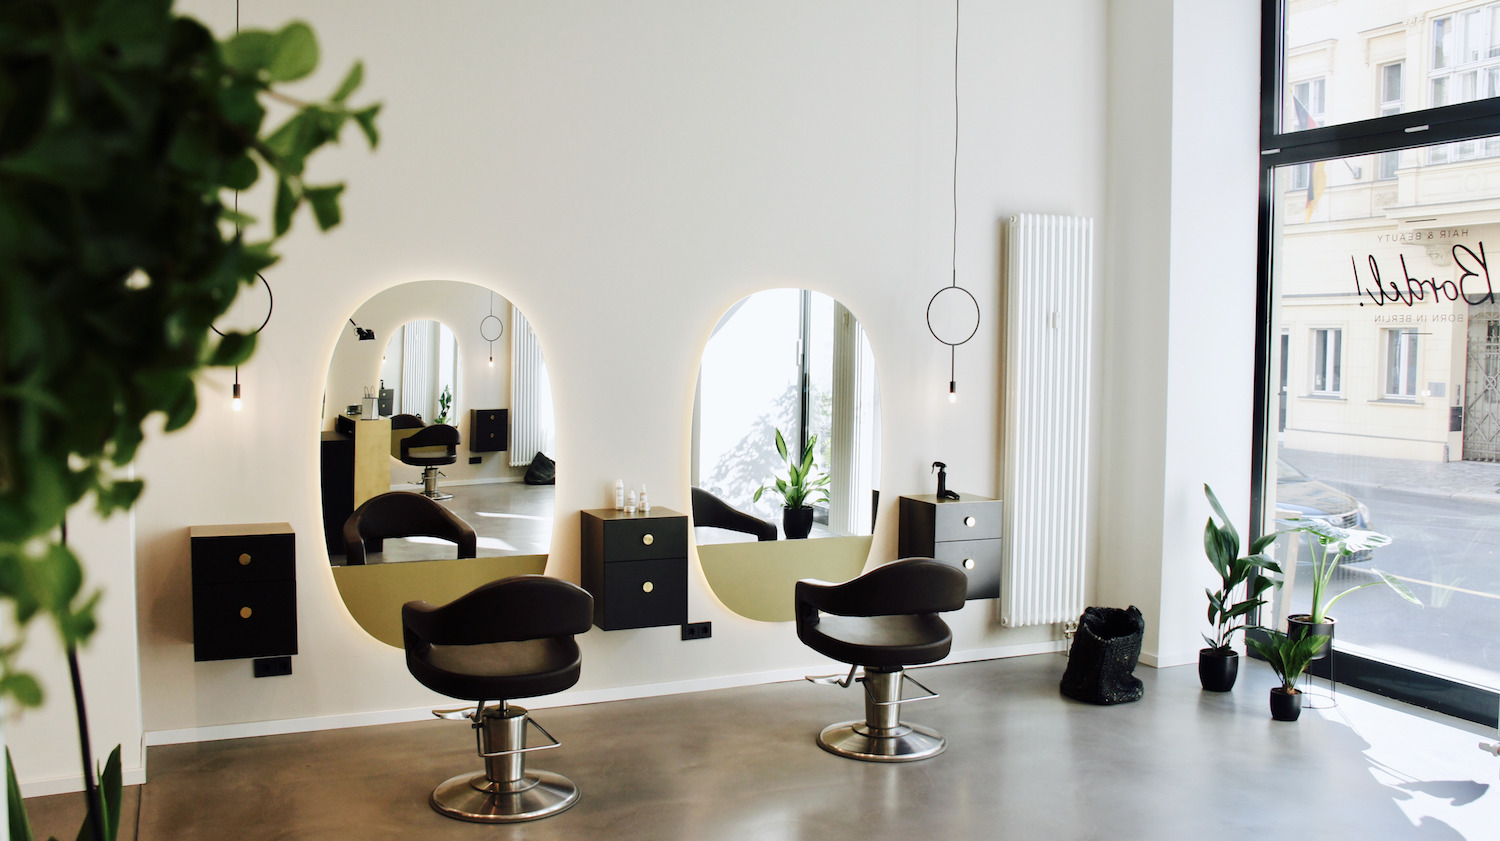 Beautyblog Beautyblogger Elina Neumann Berlin Beauty Guide Friseursalon Bordel!_7